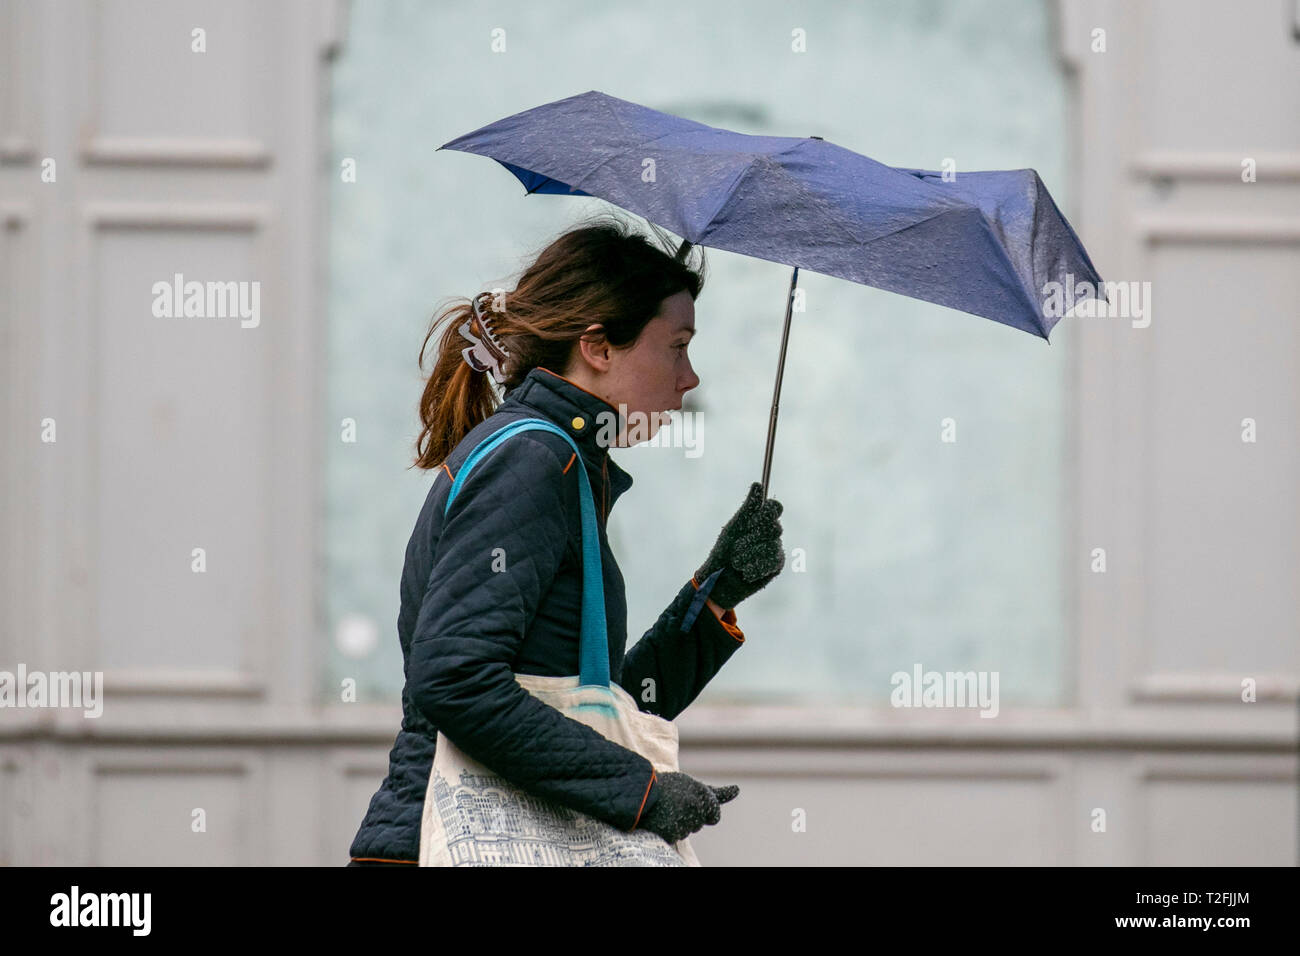 Preston, Lancashire. 2nd April, 2019. UK Weather. Rainy, cold, blustery start to the day in the city centre. Wet hair, rain, hail and wintery showers in the north-west a much colder spring day with widespread showers, some heavy. Credit. MWI/AlamyLiveNews - Stock Image